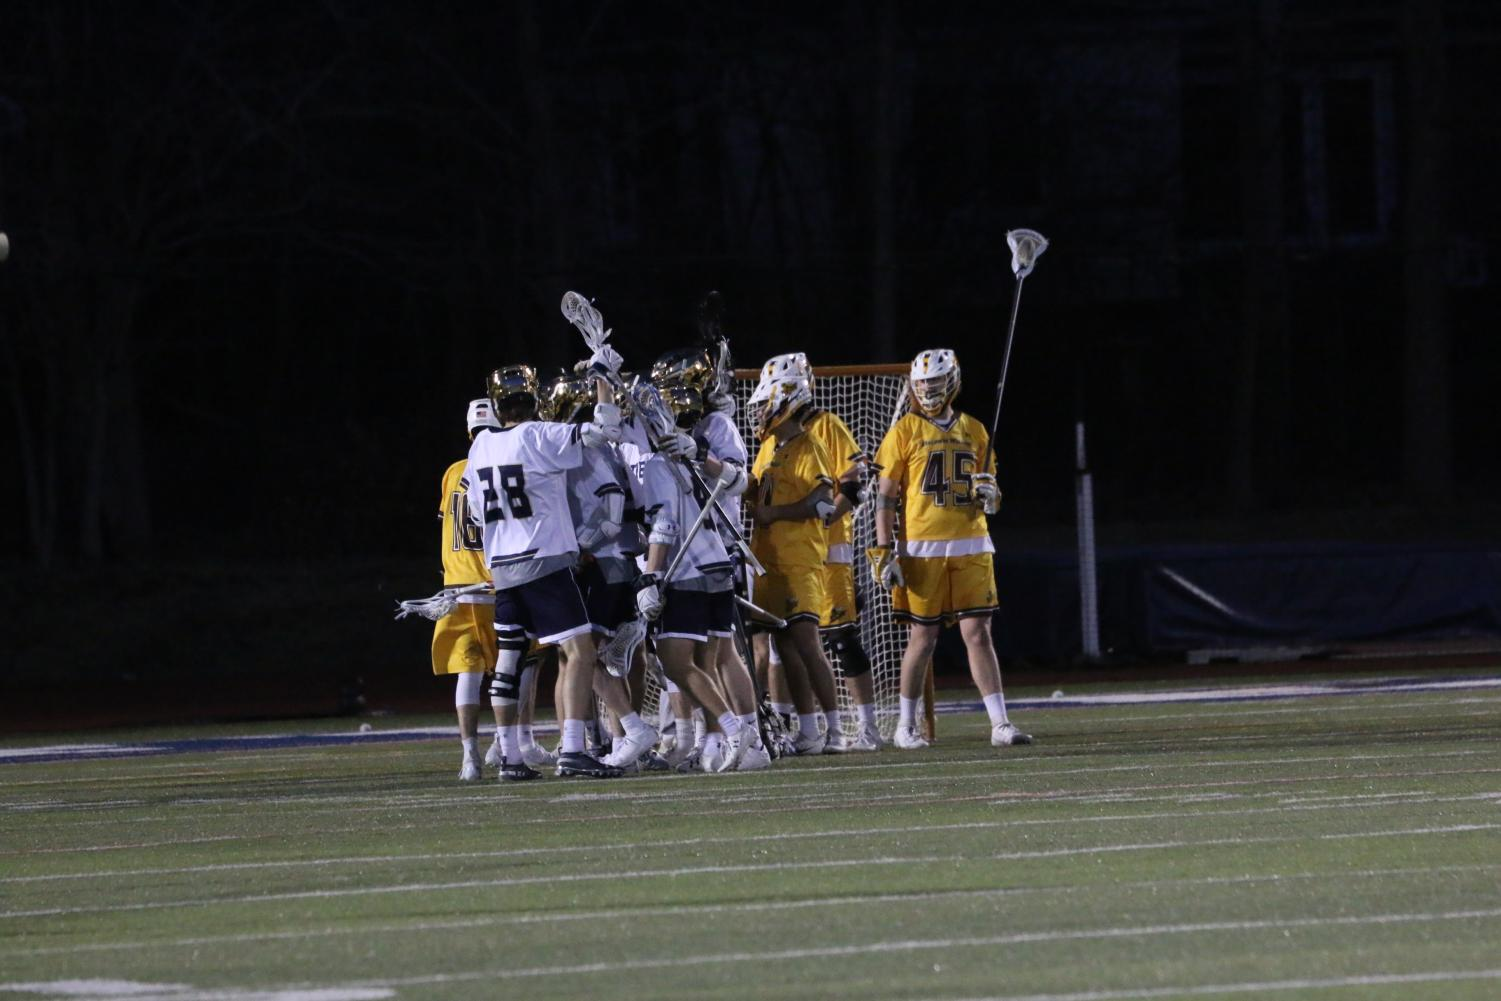 The Blue Streaks celebrate after a goal in a game against Baldwin Wallace University on Wednesday, April 3 at Don Shula Stadium.